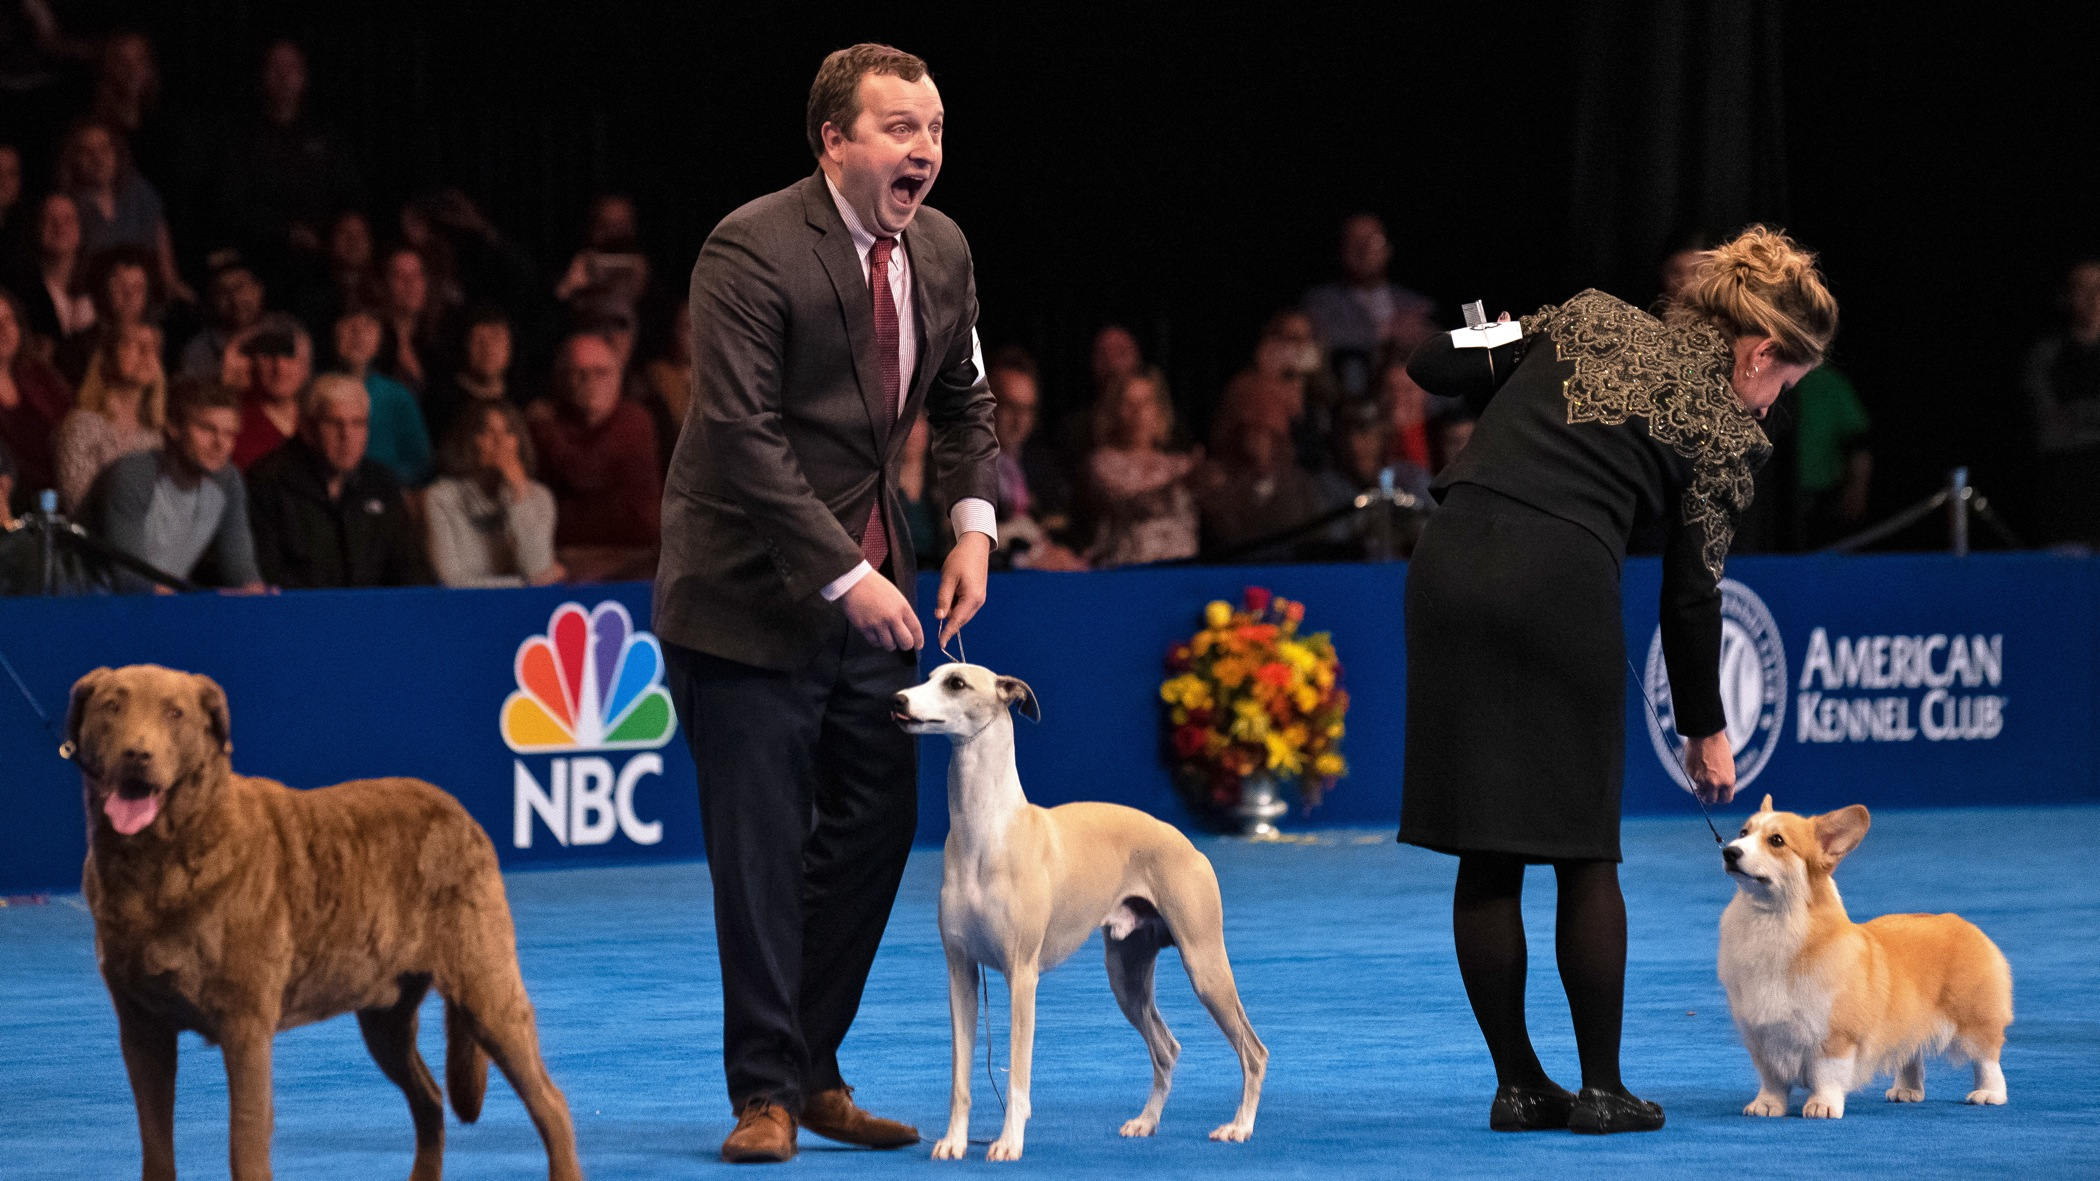 Justin Smithey reacts to the announcement that his 3-year-old whippet, Whiskey, won Best in Show at the National Dog Show in Oaks, Pa.